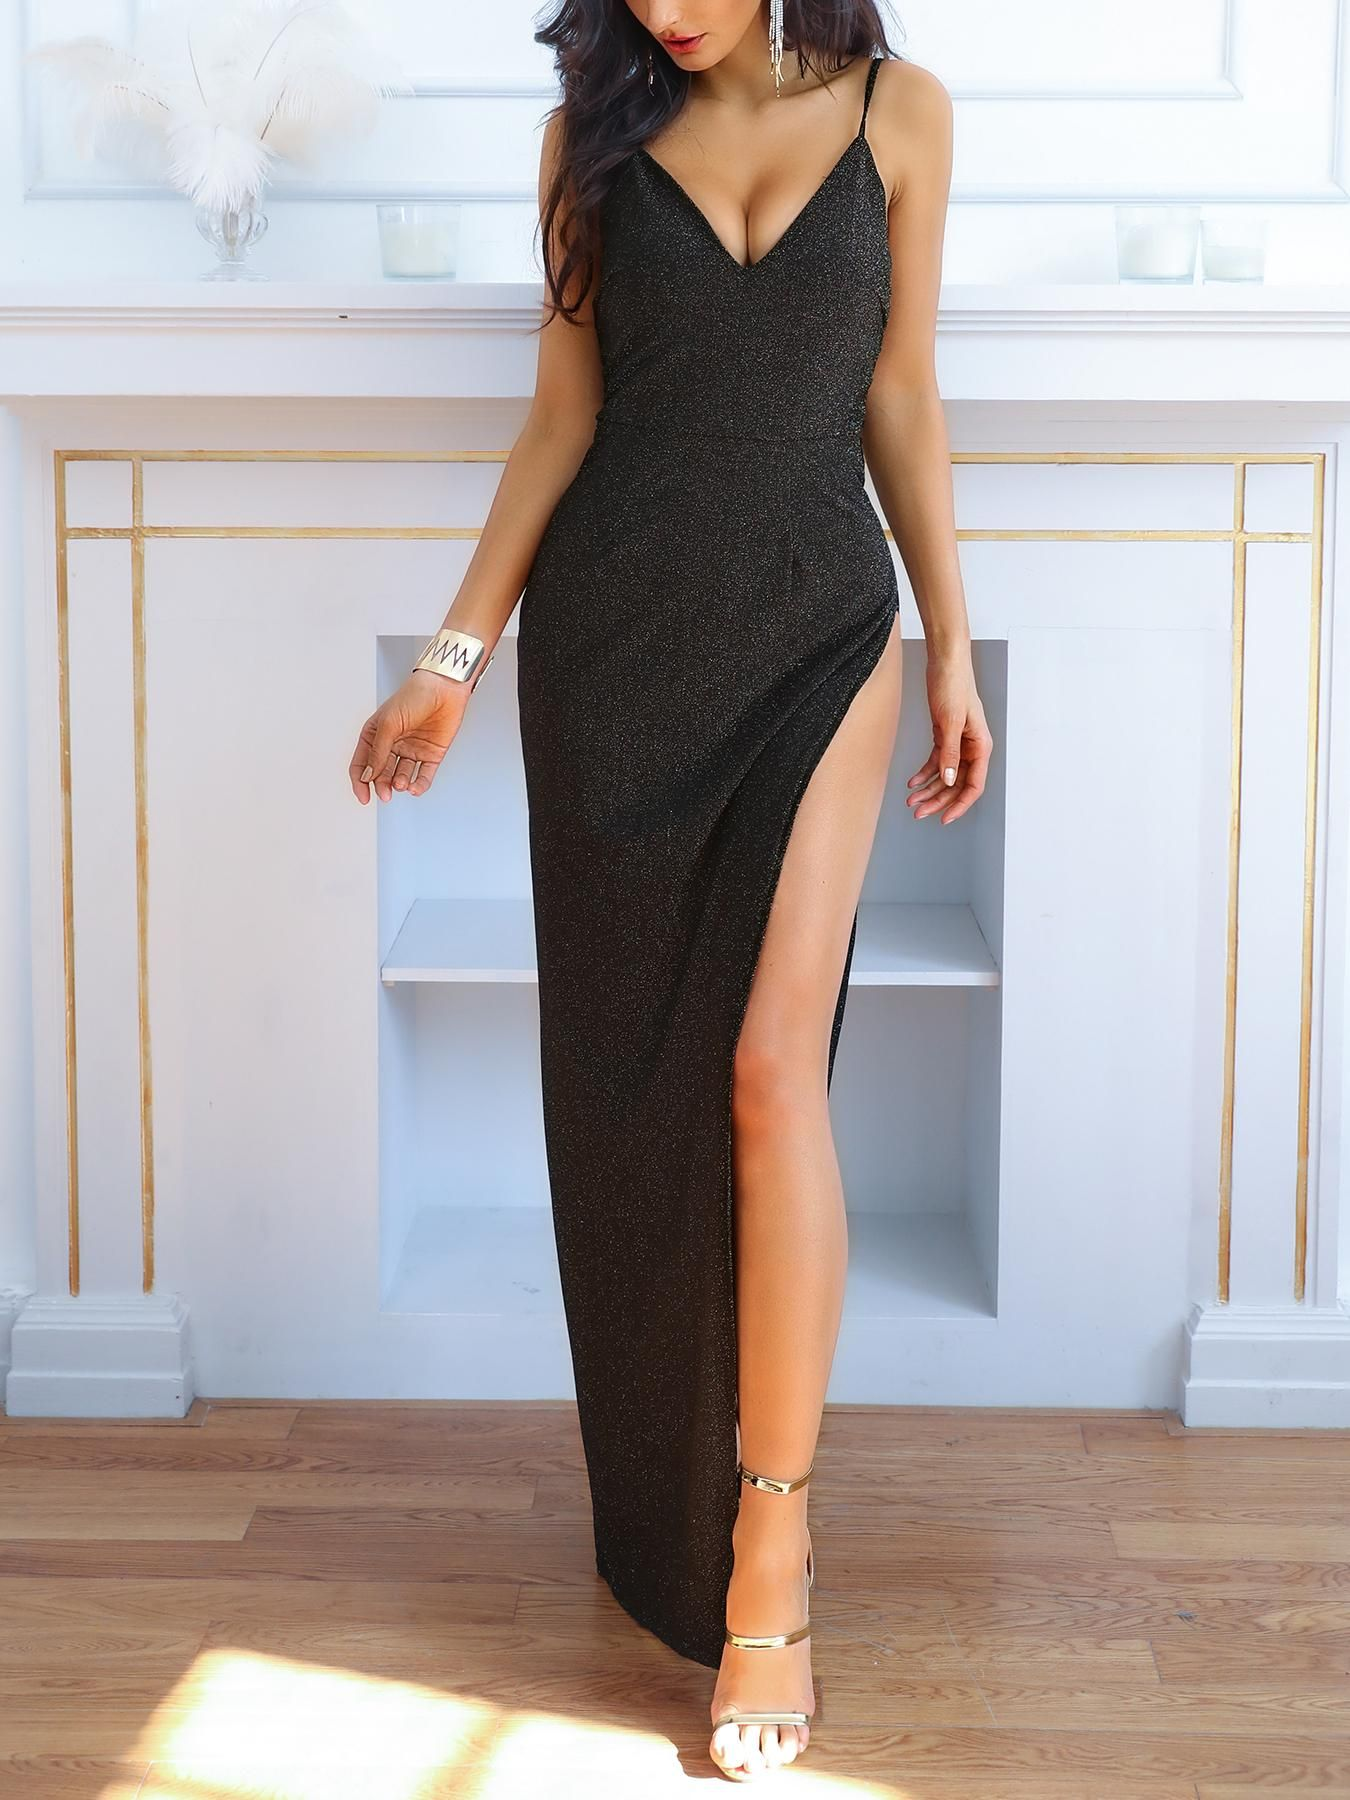 Sexy shiny sequins side high split night gown evening dress dress